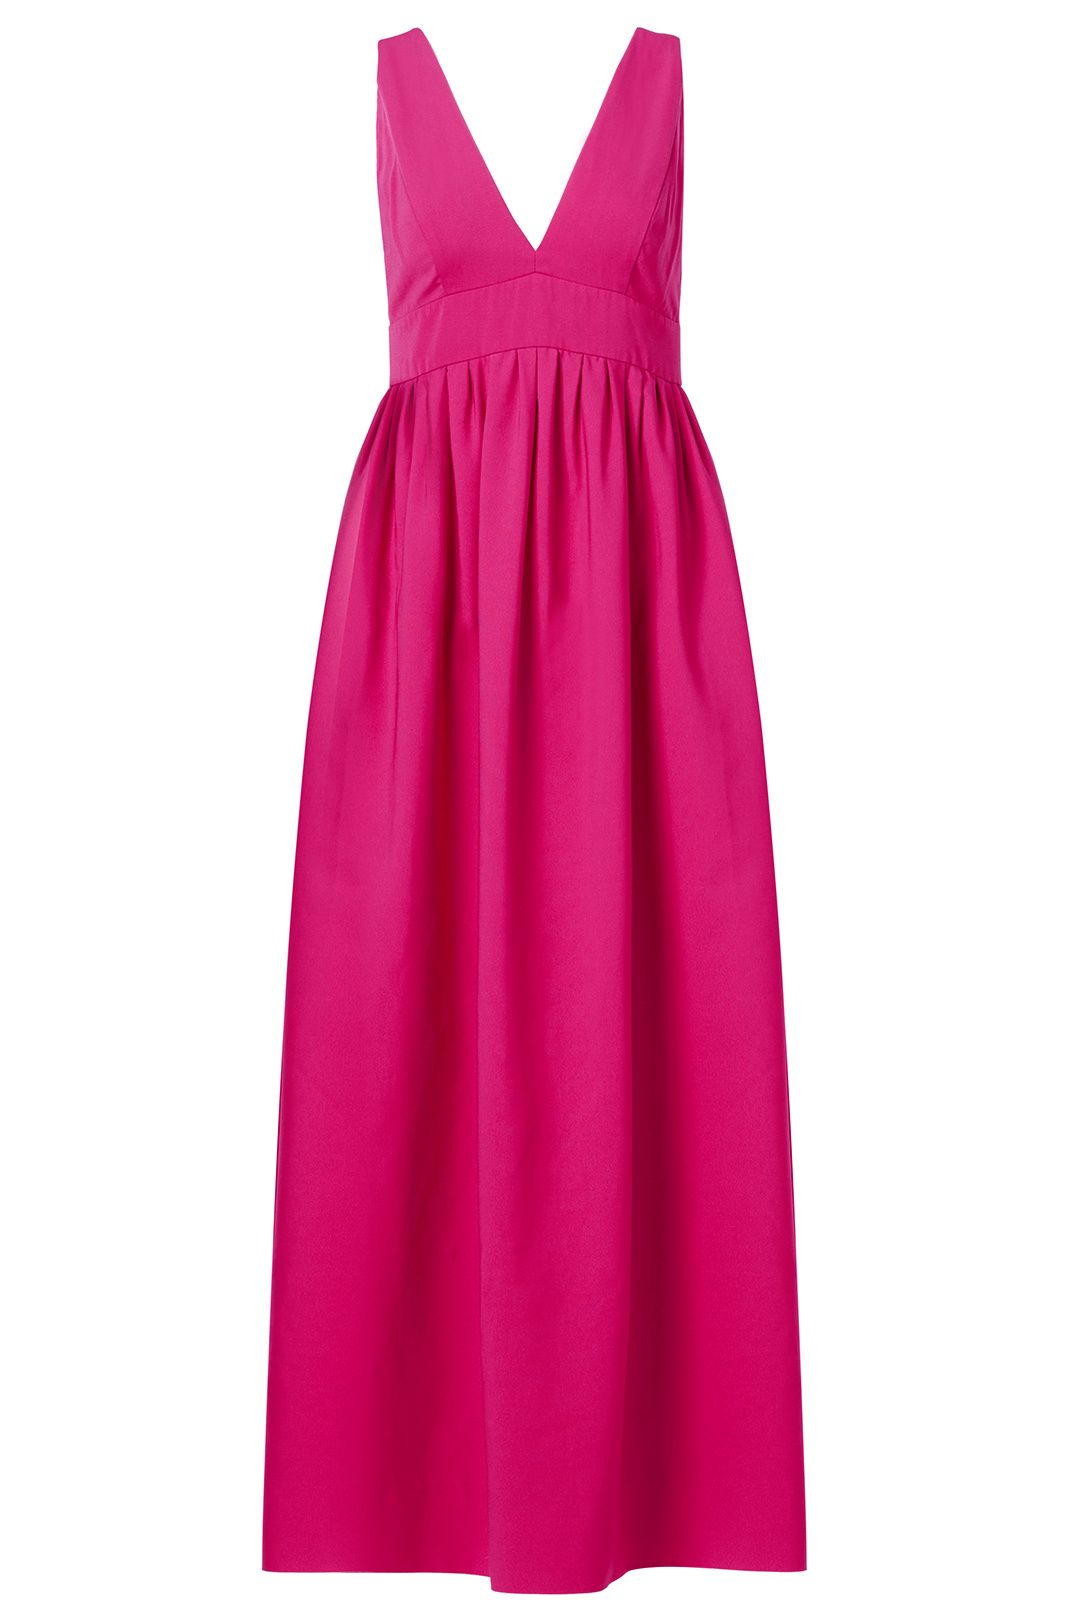 Size 20 maternity wedding dress  Rent Dayglo Gown by Jill Jill Stuart for  only at Rent the Runway